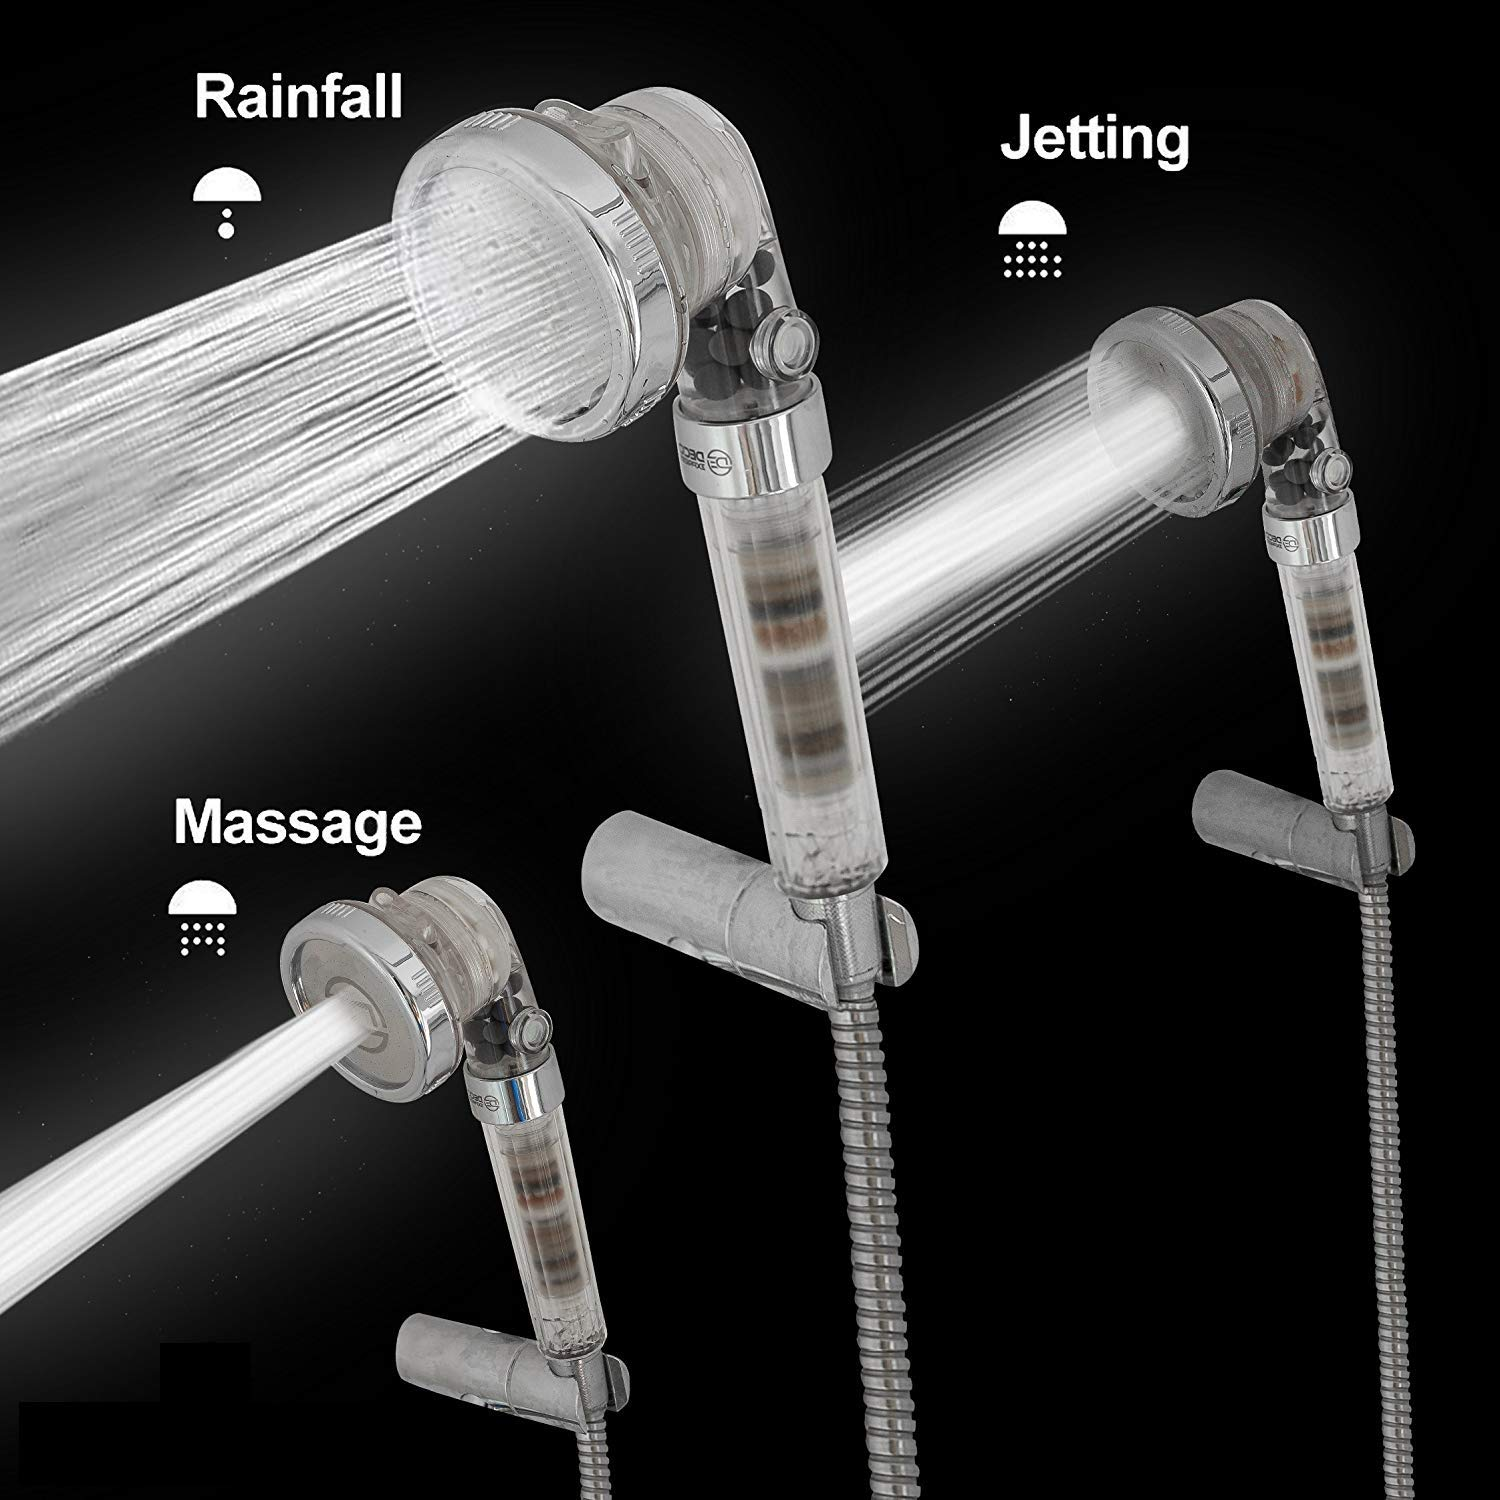 High Pressure Handheld Ionic Filter Shower Head with 3-Way Shower Modes - Pressure Booster & Water Saving – With Negative Ion Spinning Filter that Softens Water and Removes Chlorine – With Magnetic Therapy Function - Sealed Gift Box comes w